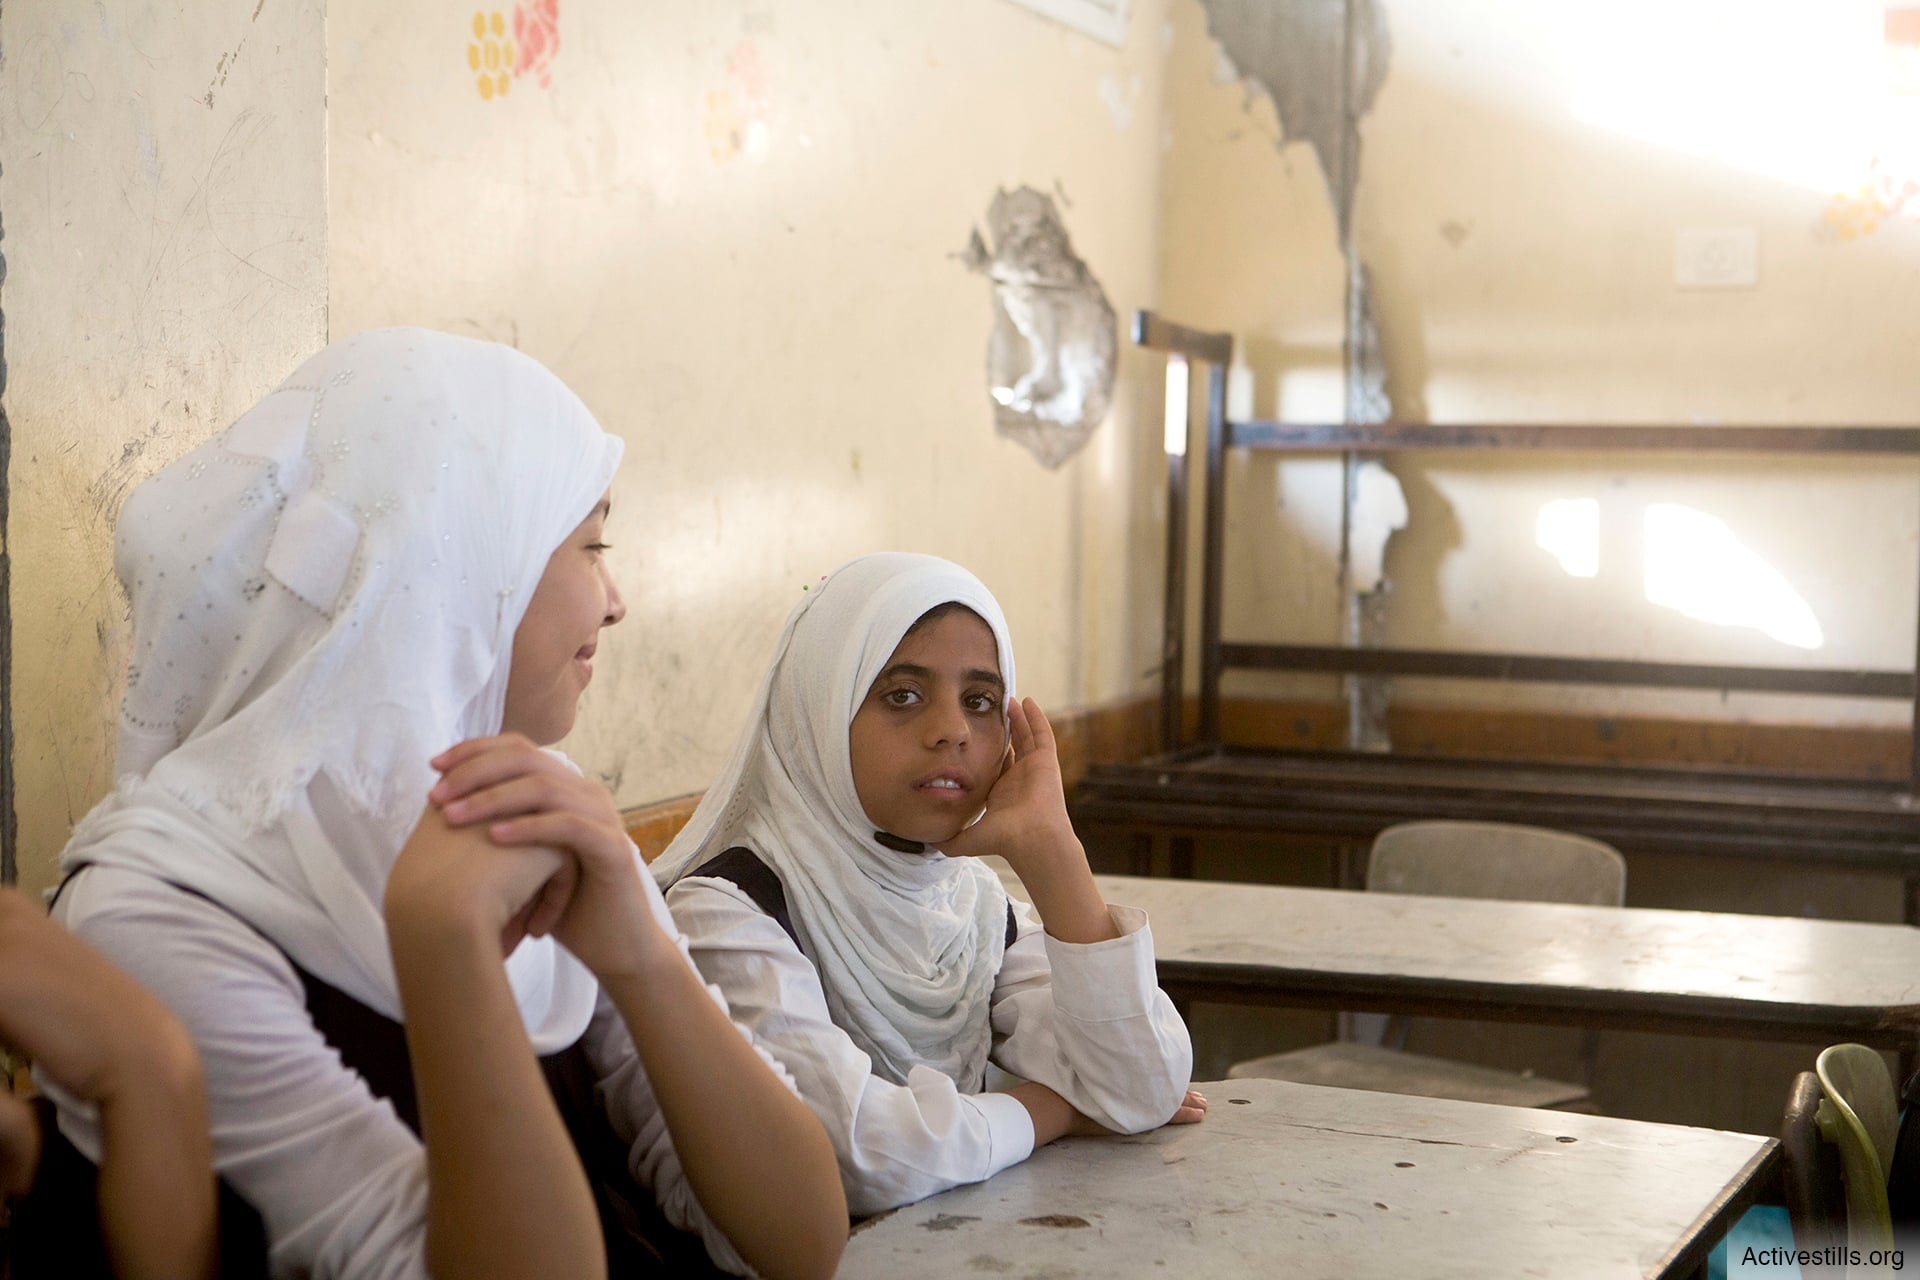 Students in the Shuja'iyya neighborhood of Gaza City attend class in a school damaged during Israel's 2014 military assault. (Photo: ActiveStills / Anne Paq)